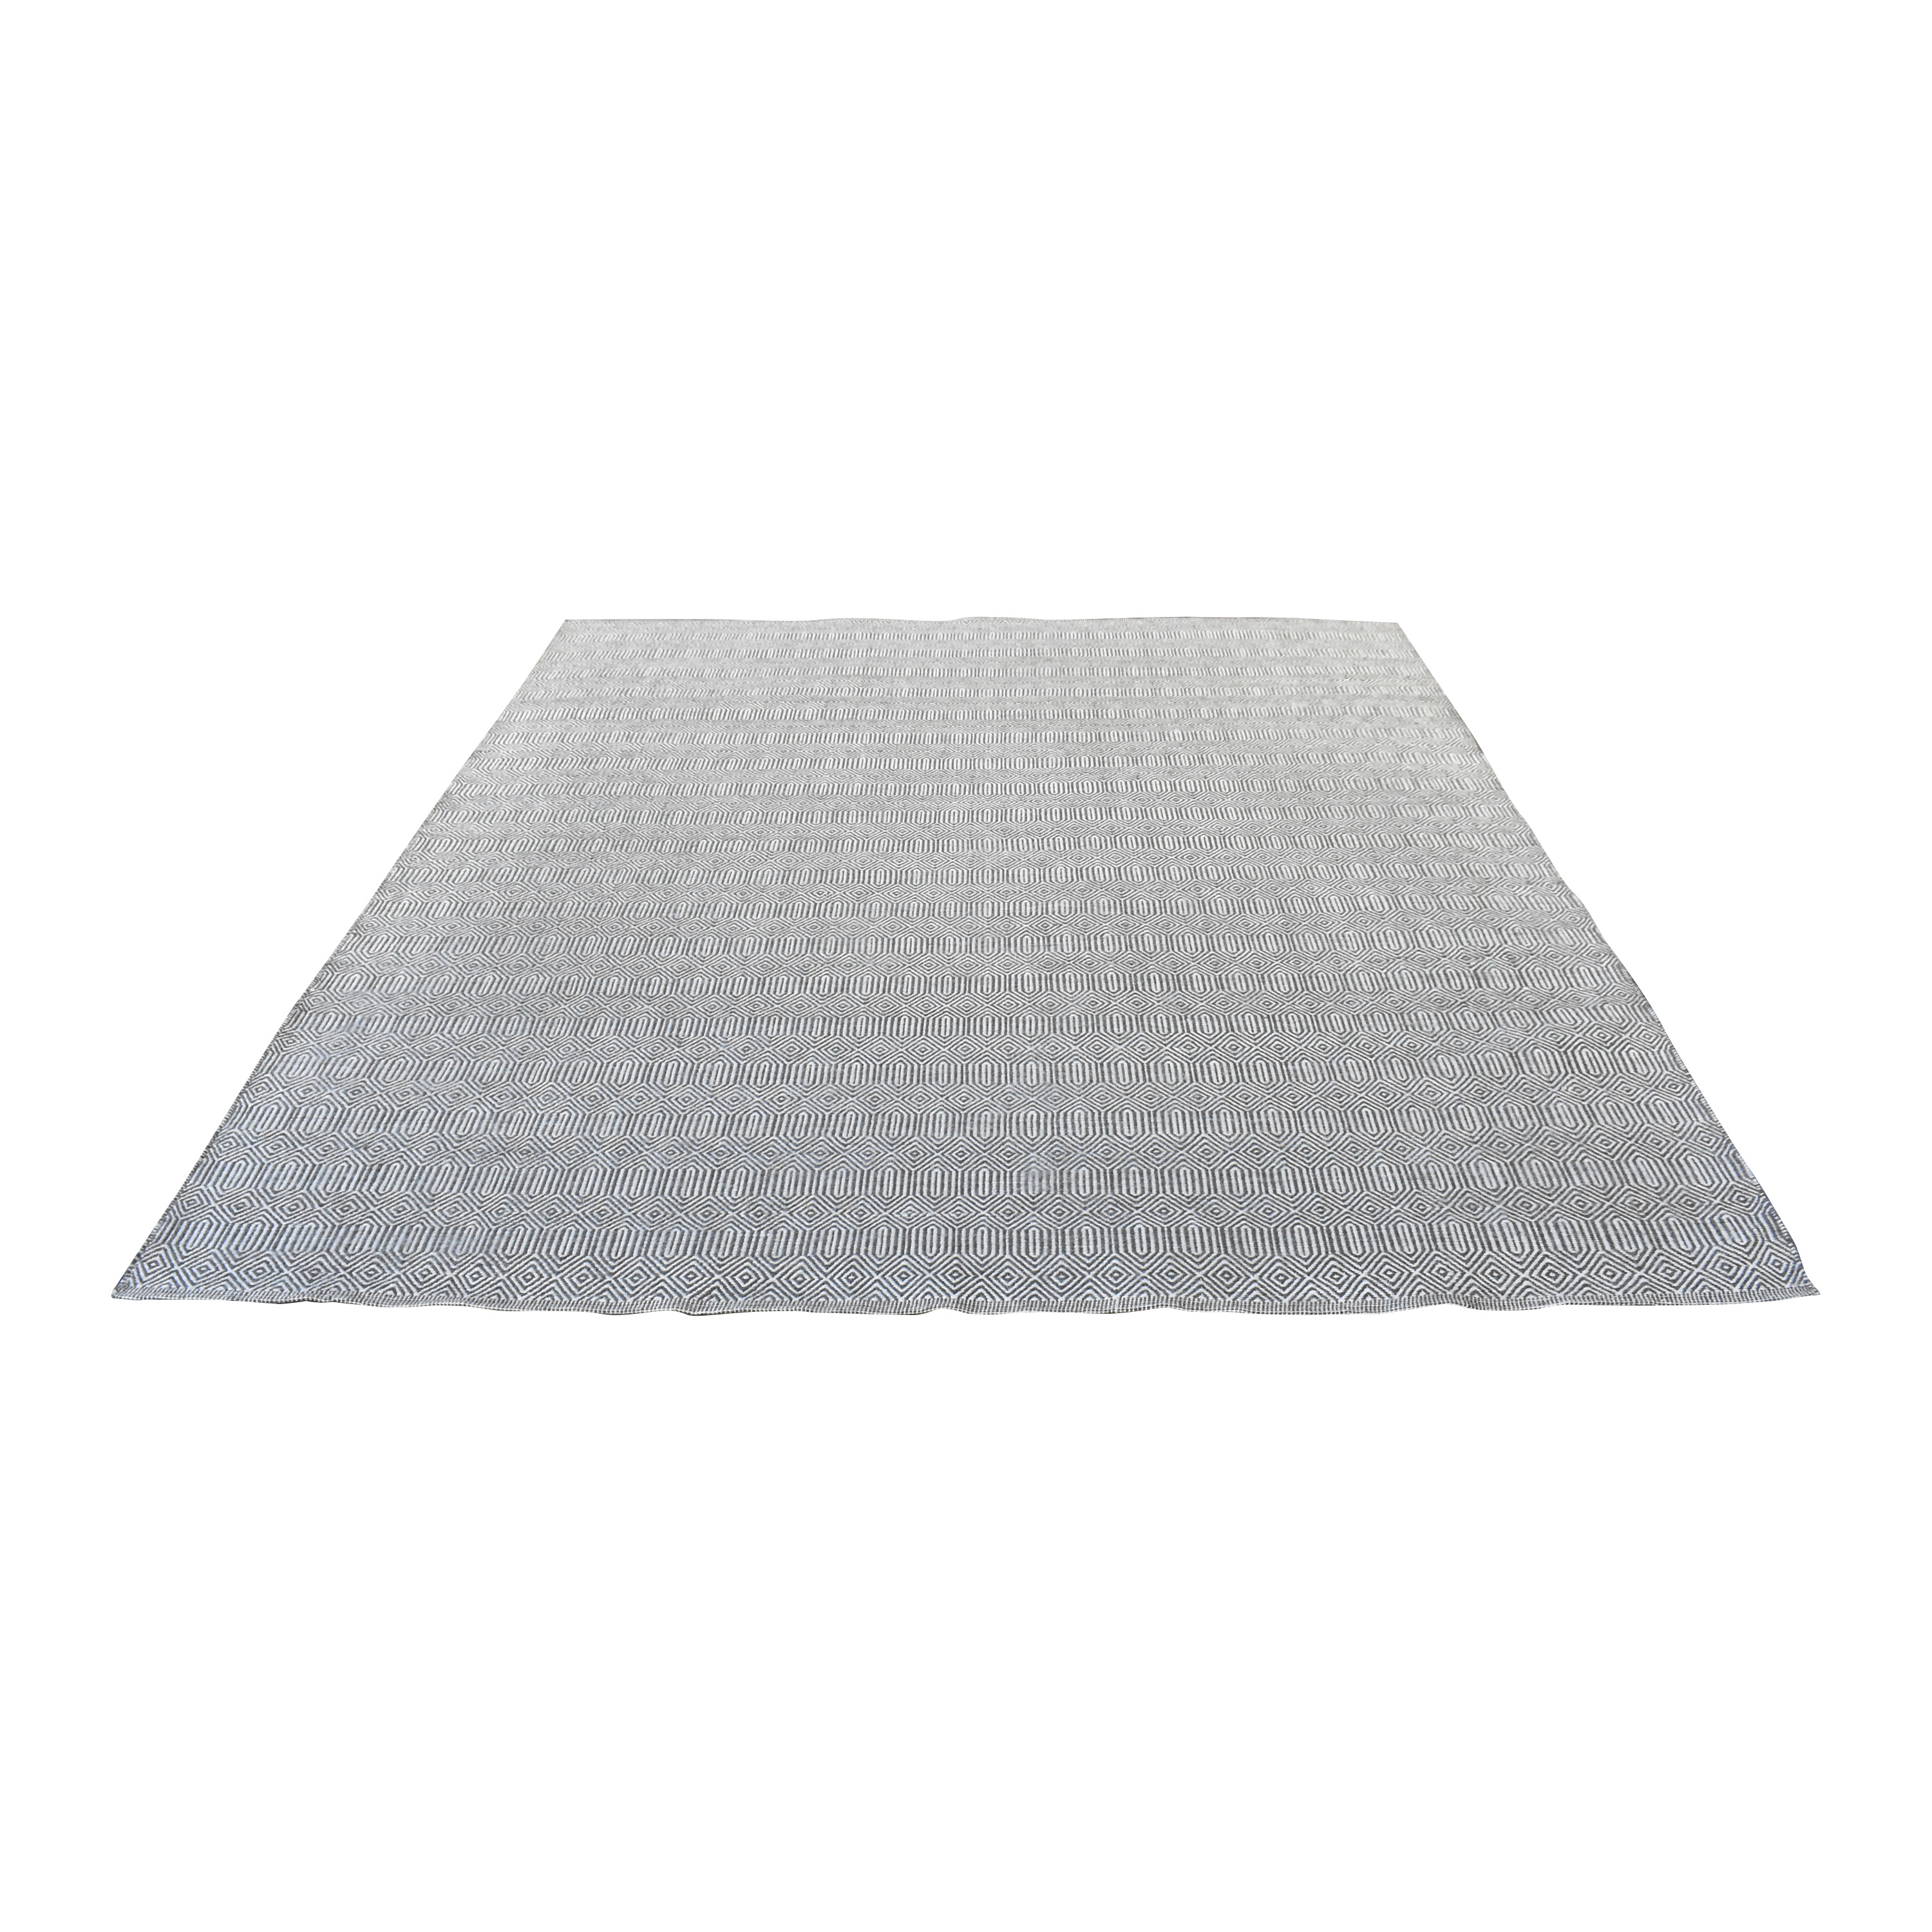 Room & Board Room & Board Sequence Area Rug discount